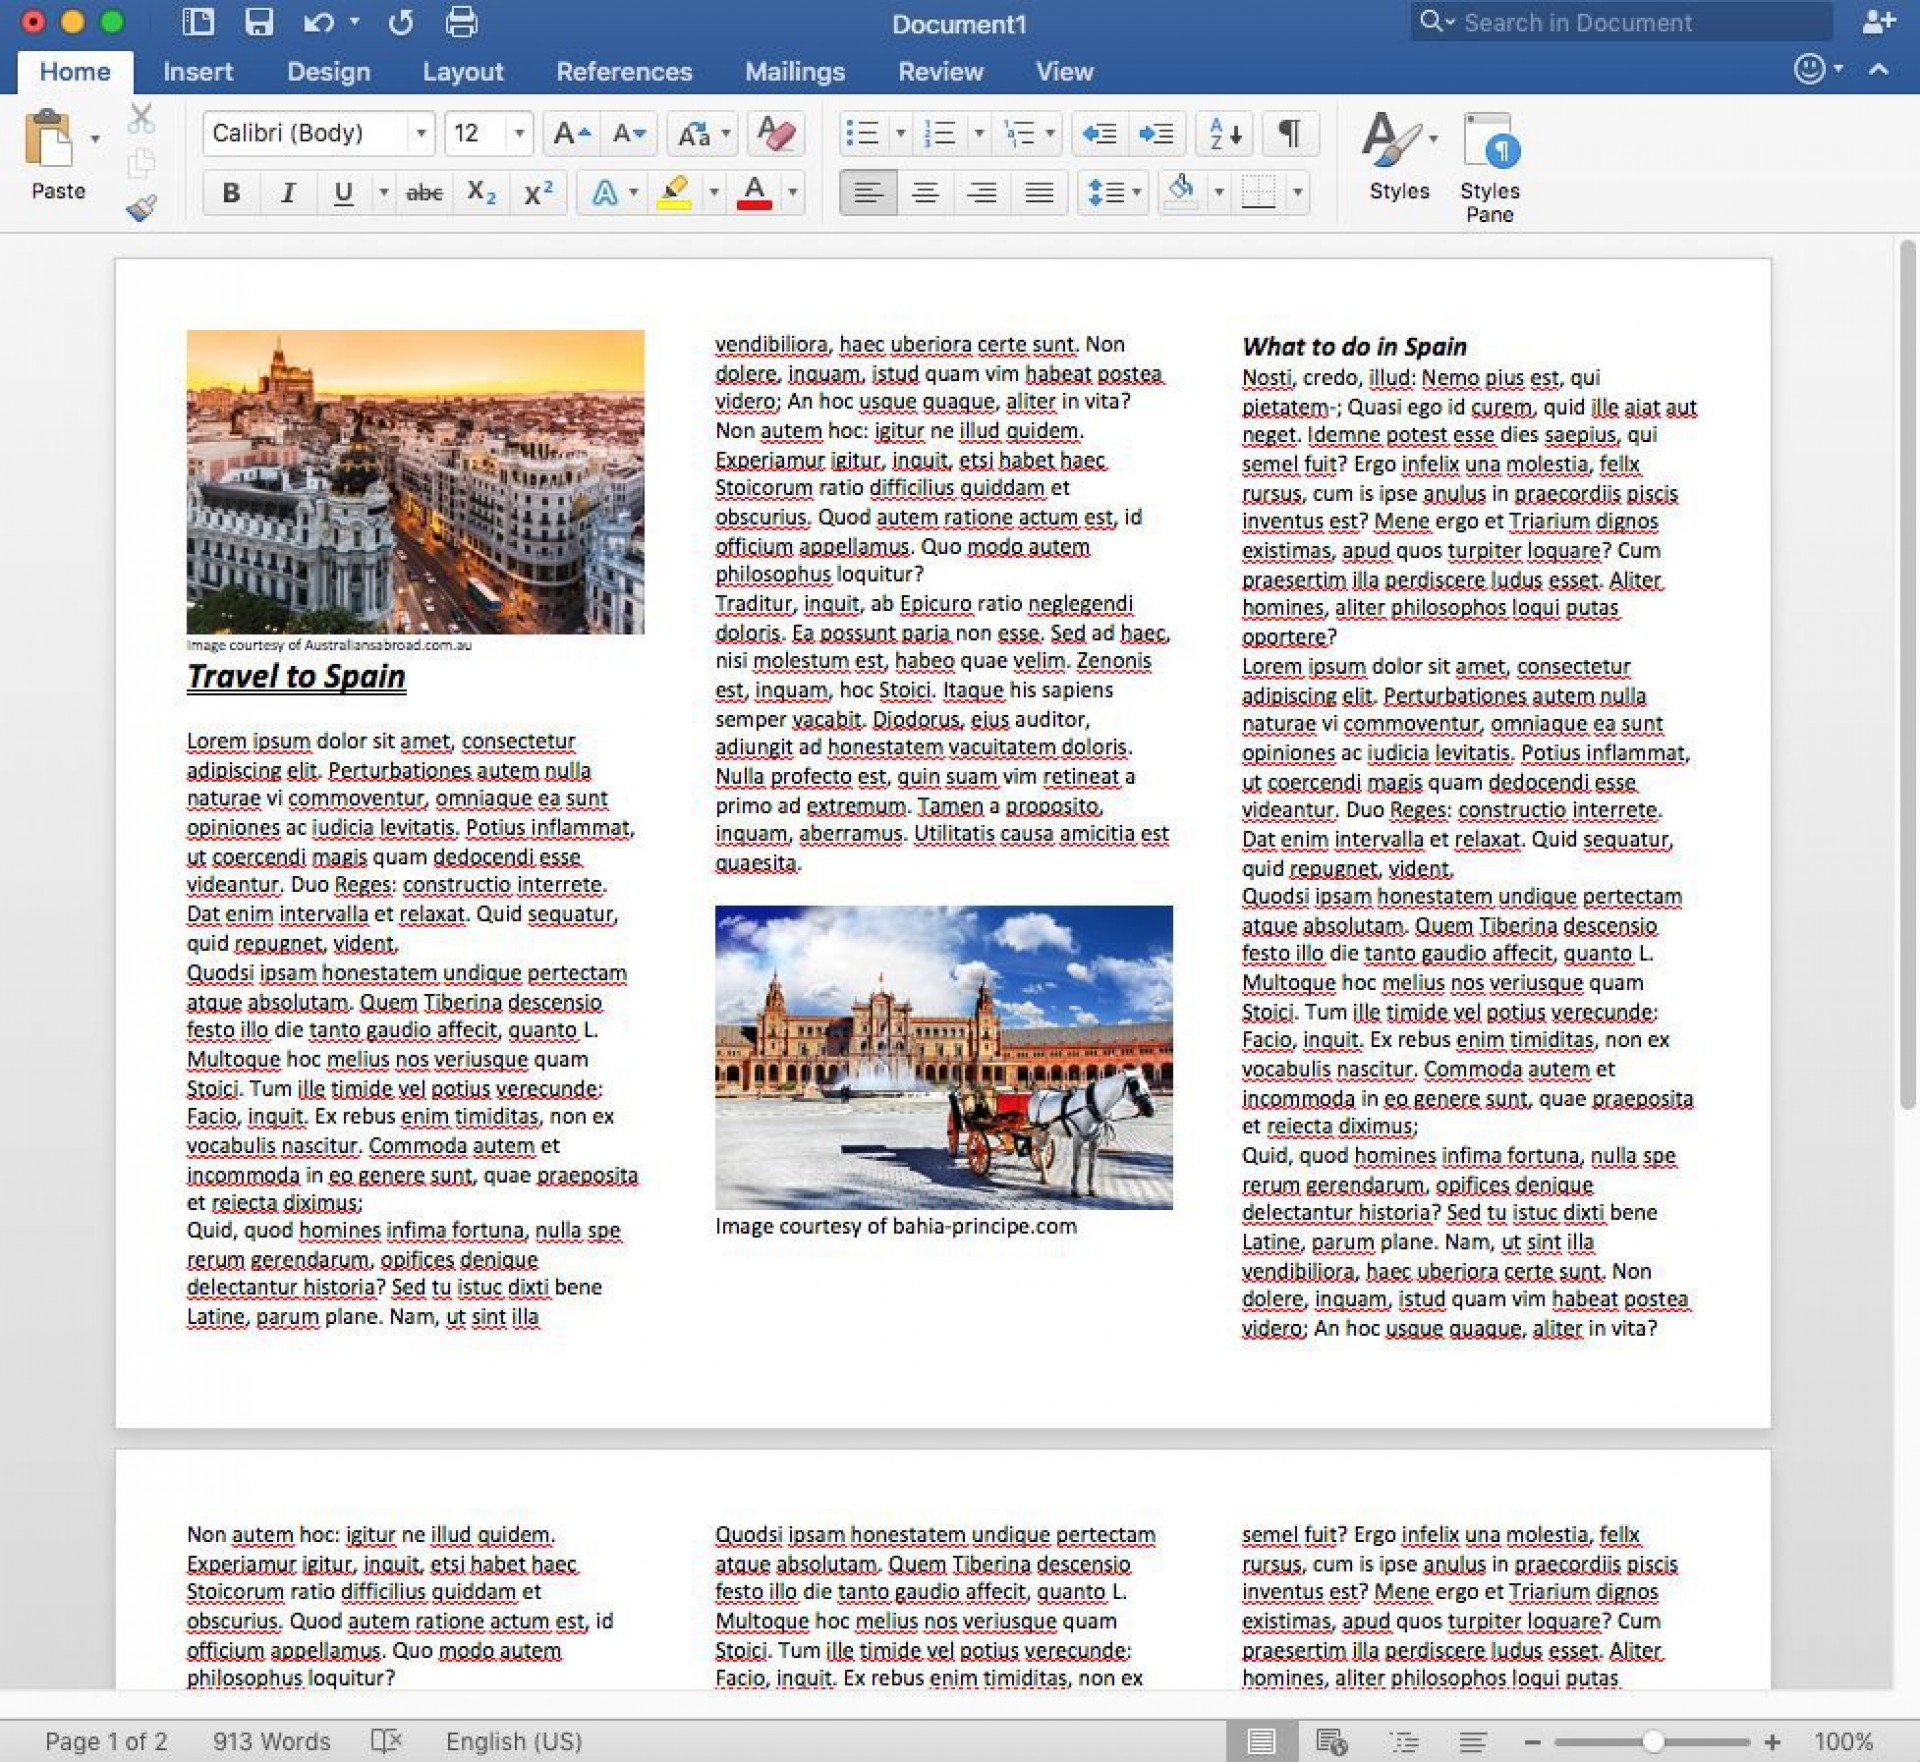 007 Marvelou M Word 2007 Brochure Template Picture  Templates Microsoft Office Download For Free1920